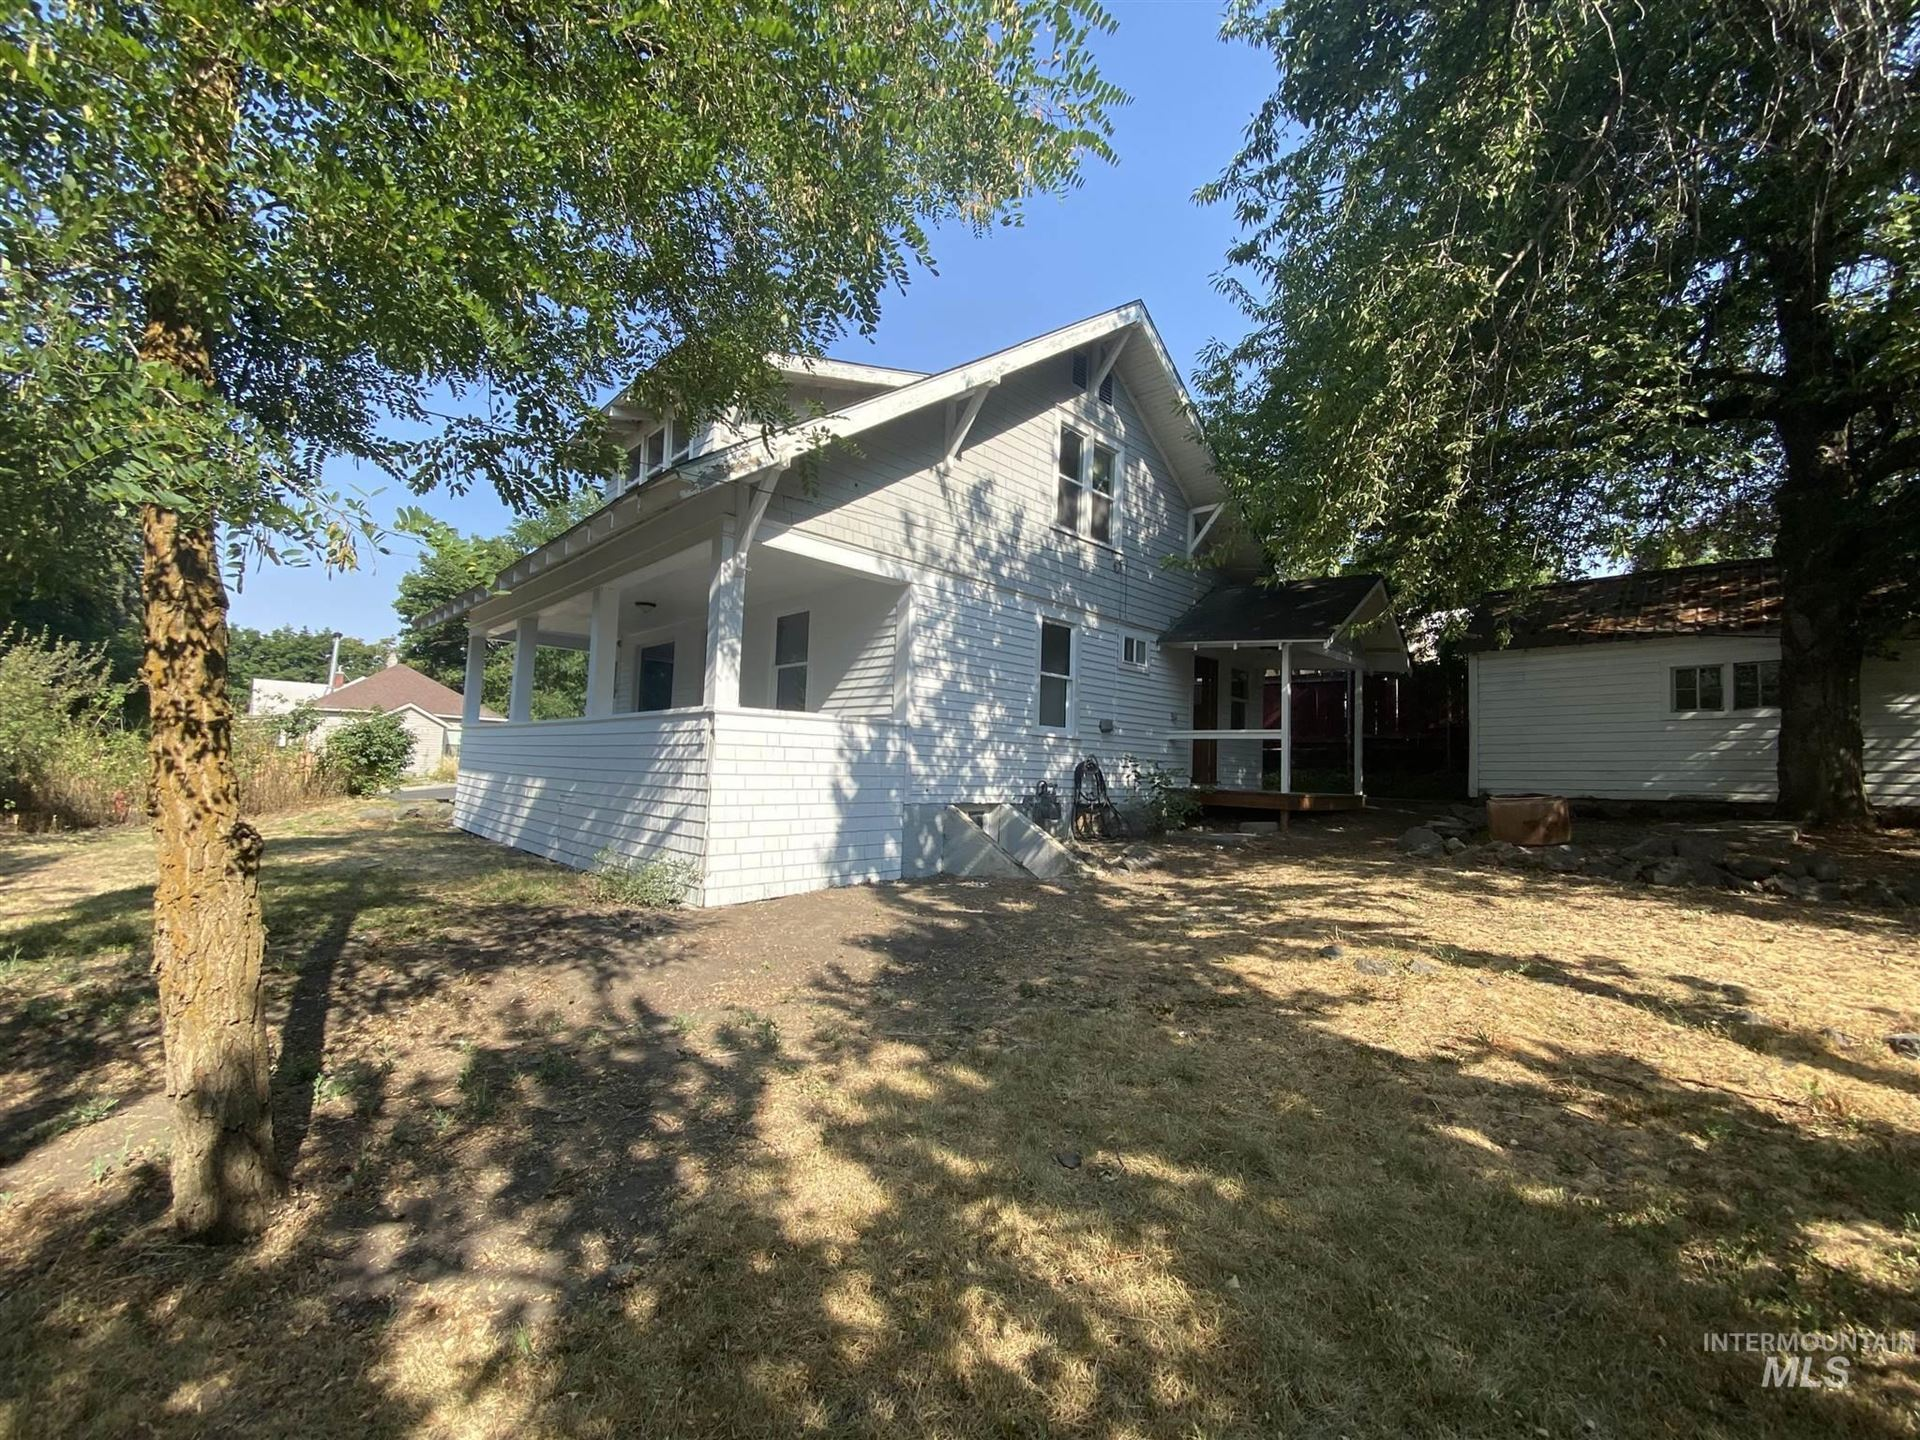 Photo of 424 W A Street, Moscow, ID 83843 (MLS # 98803825)